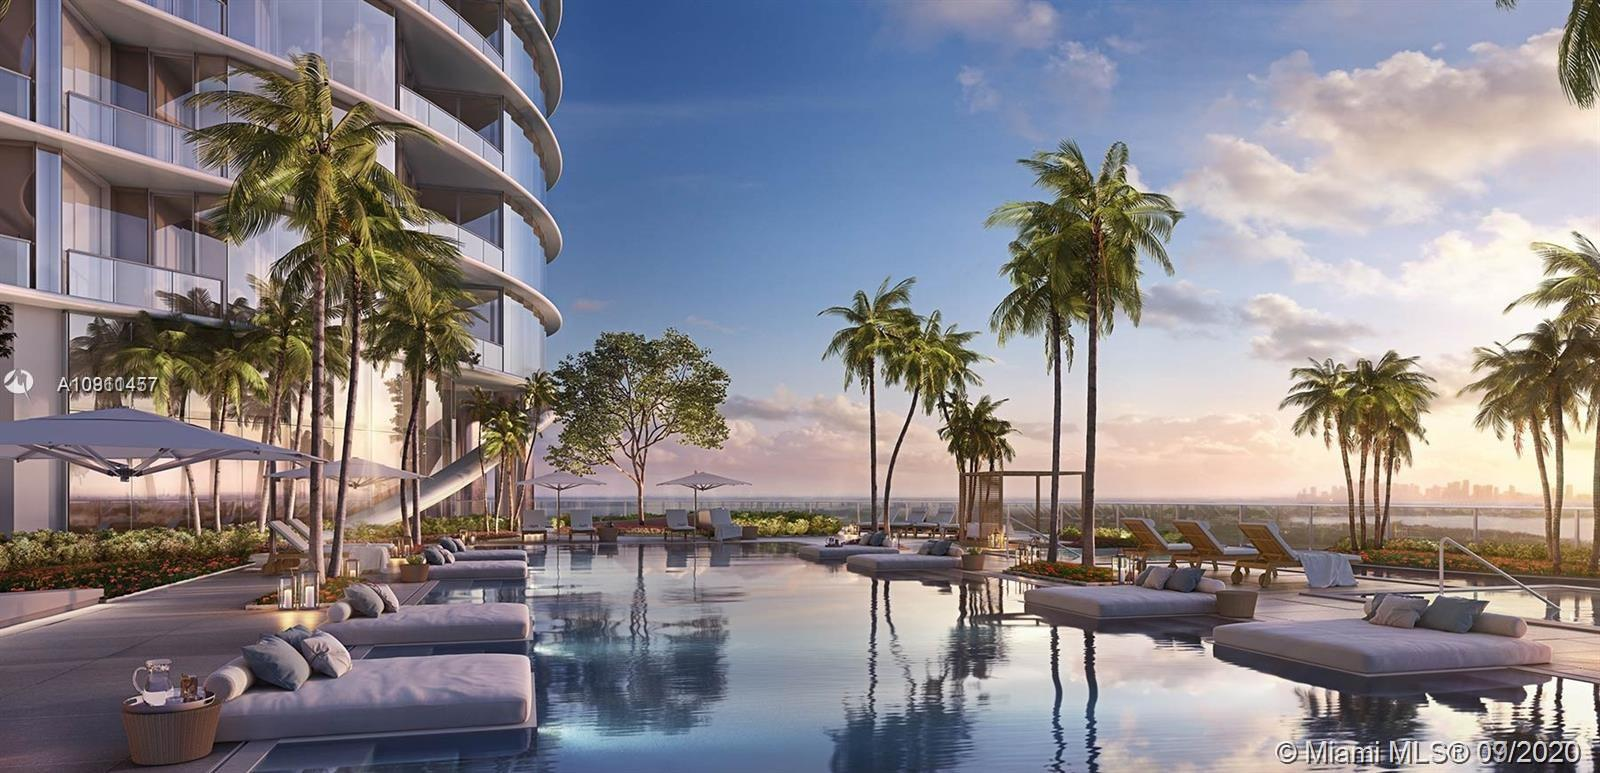 Ritz Carlton Residences #3001 - 15701 Collins Ave #3001, Sunny Isles Beach, FL 33160